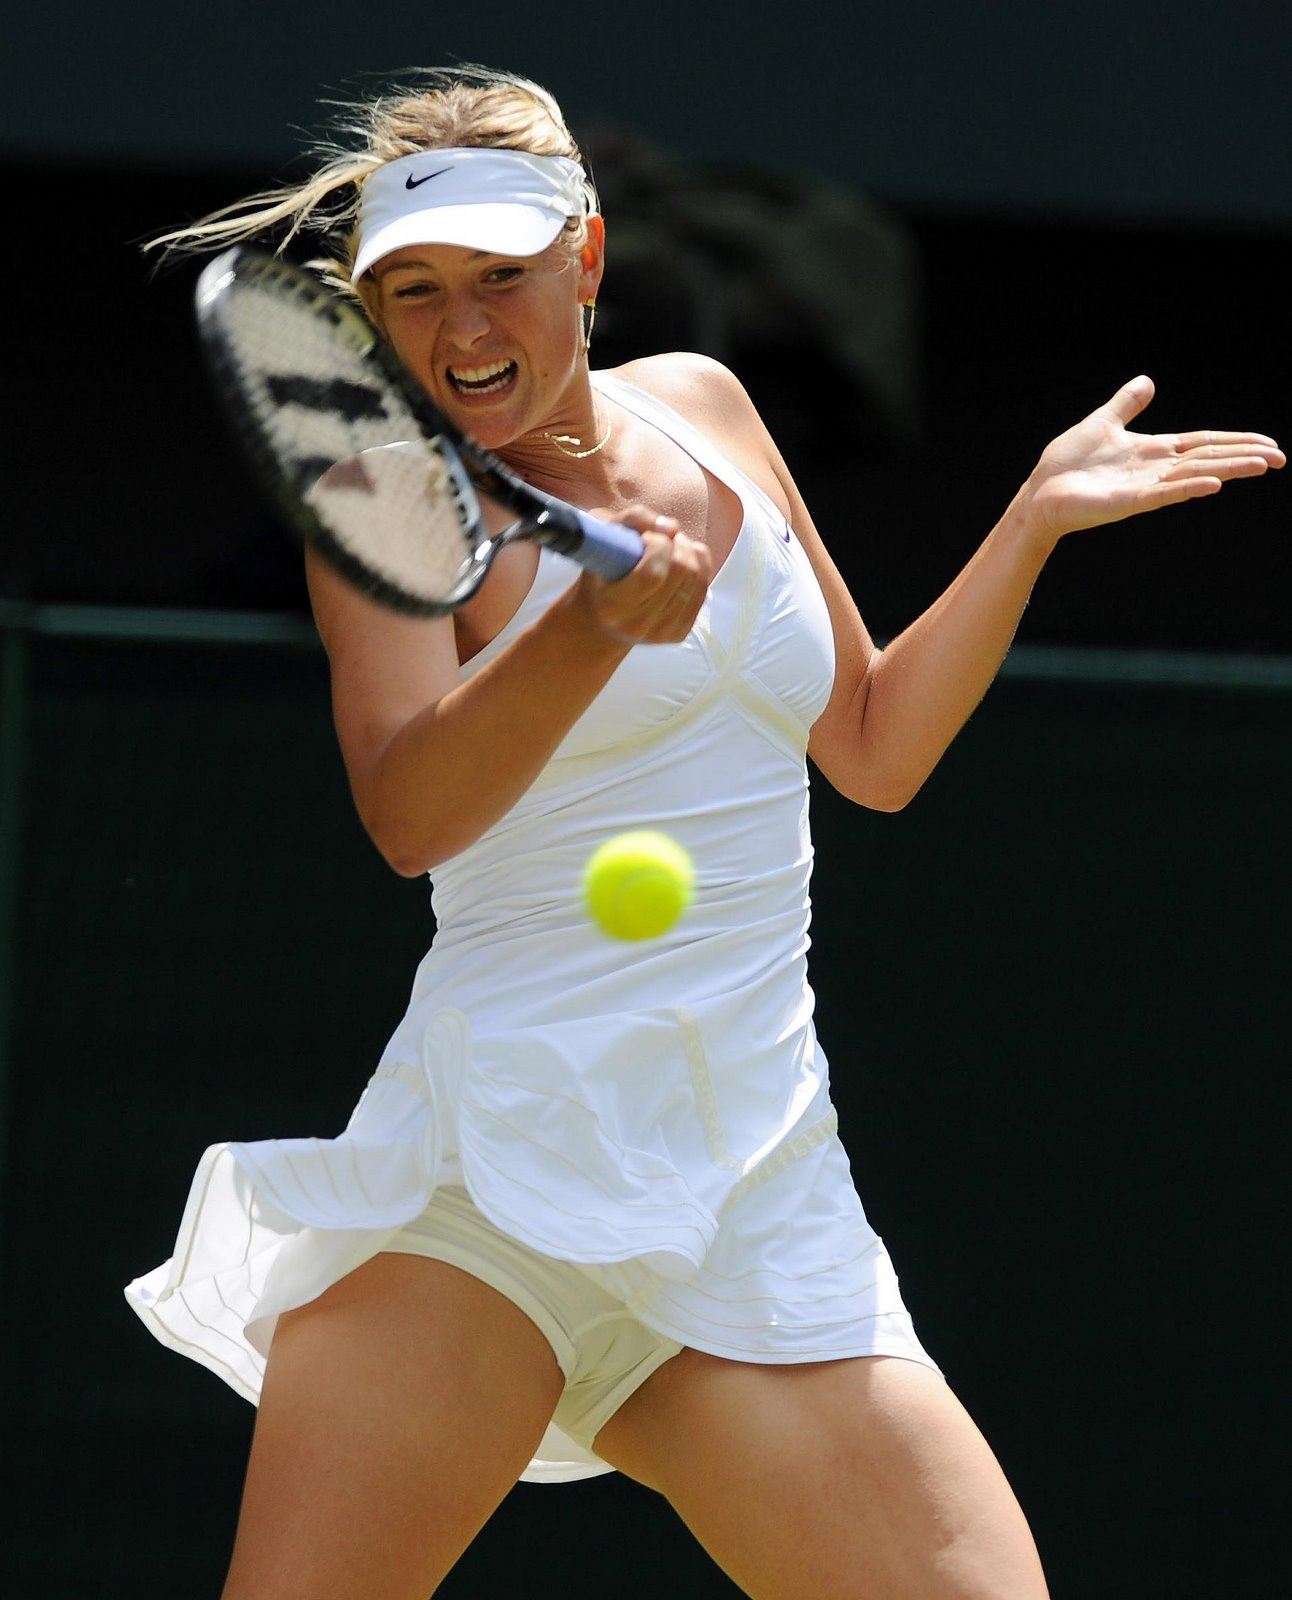 Maria Sharapova Screaming Yelling At Wimbledon